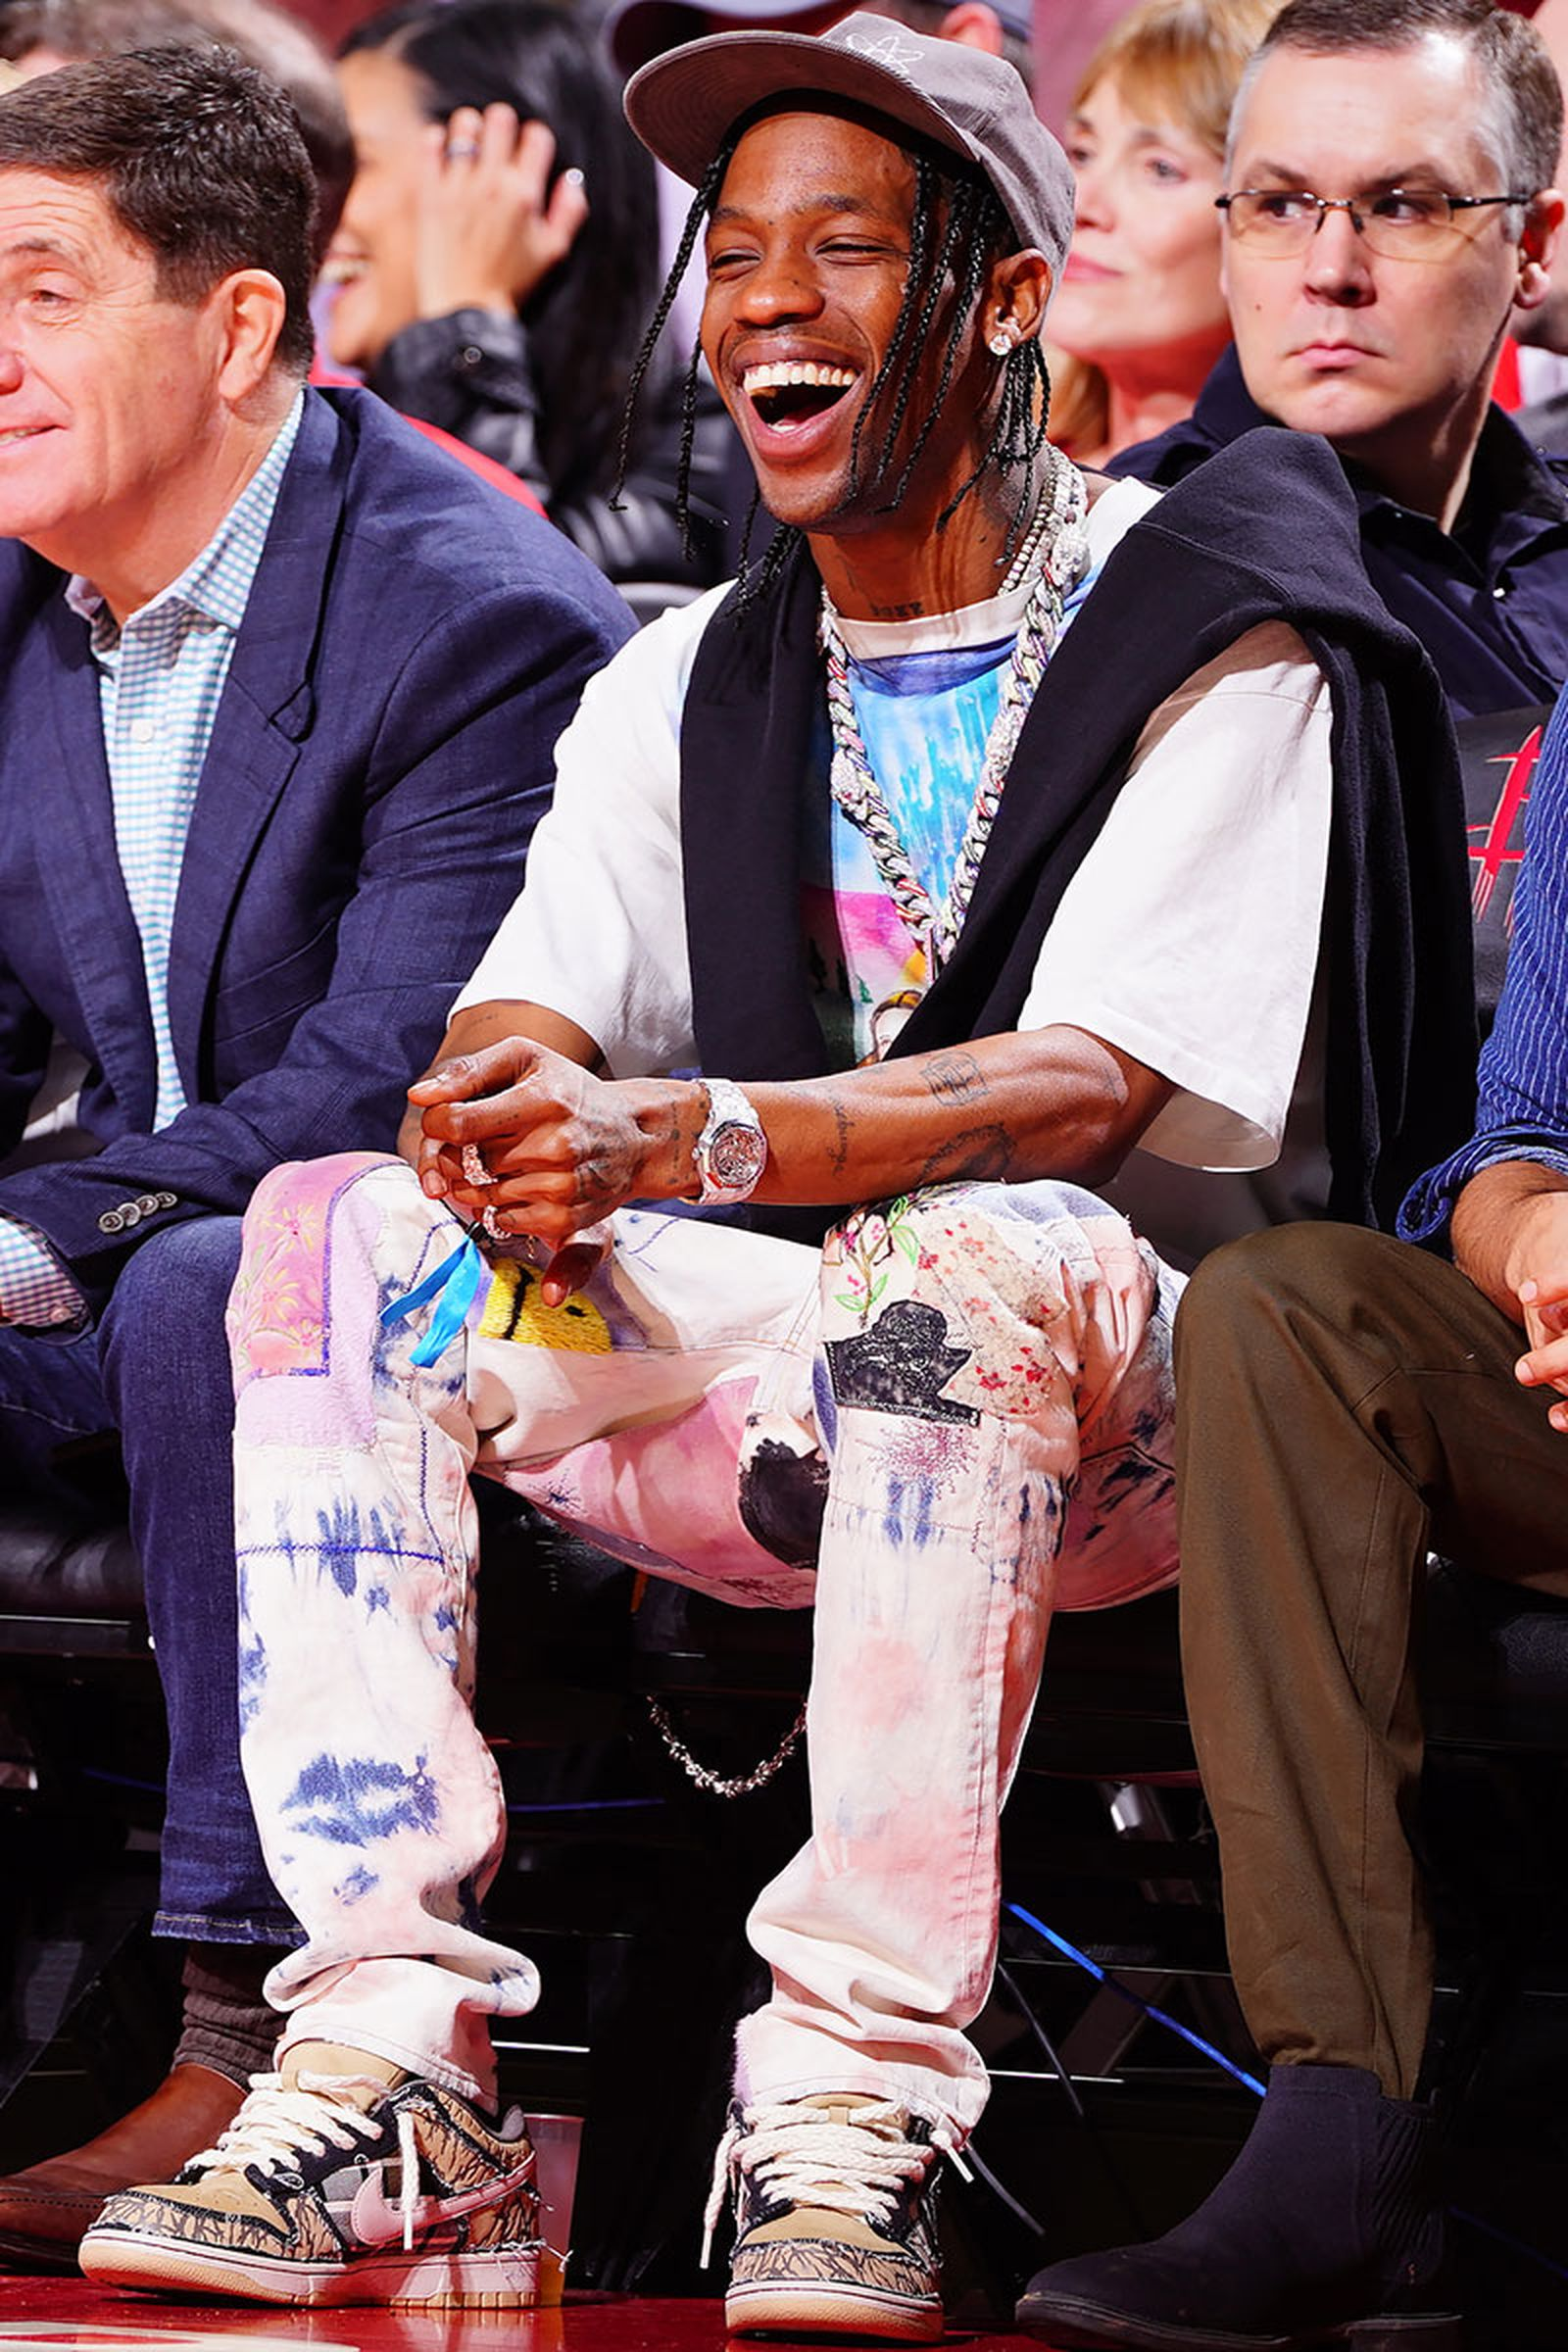 Travis Scott attends a game between the Houston Rockets and the Los Angeles Lakers